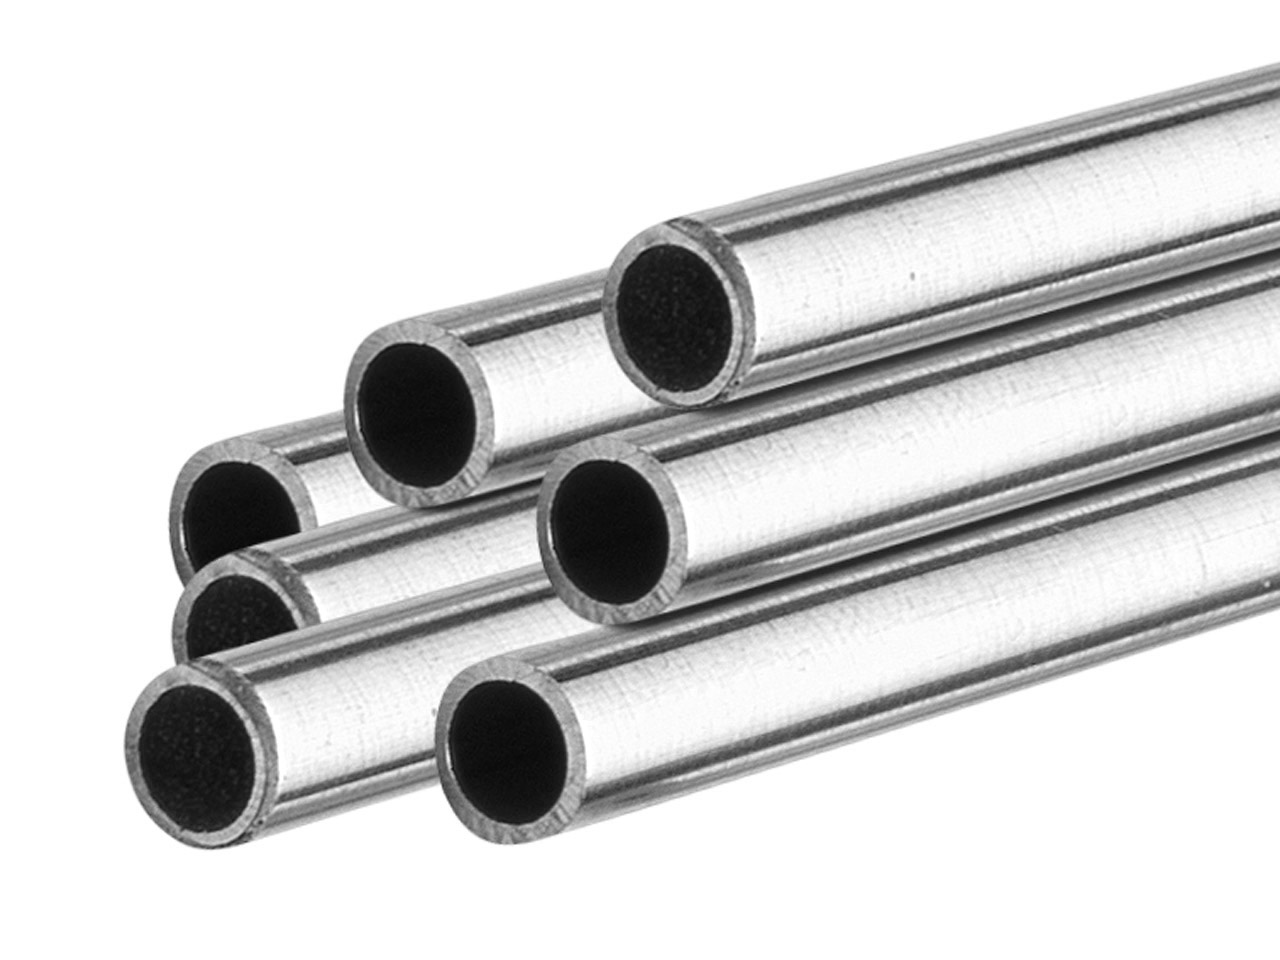 9ct Medium White Tube Ref B,       Outside Diameter 6.0mm,            Inside Diameter 4.6mm, 0.7mm Wall  Thickness